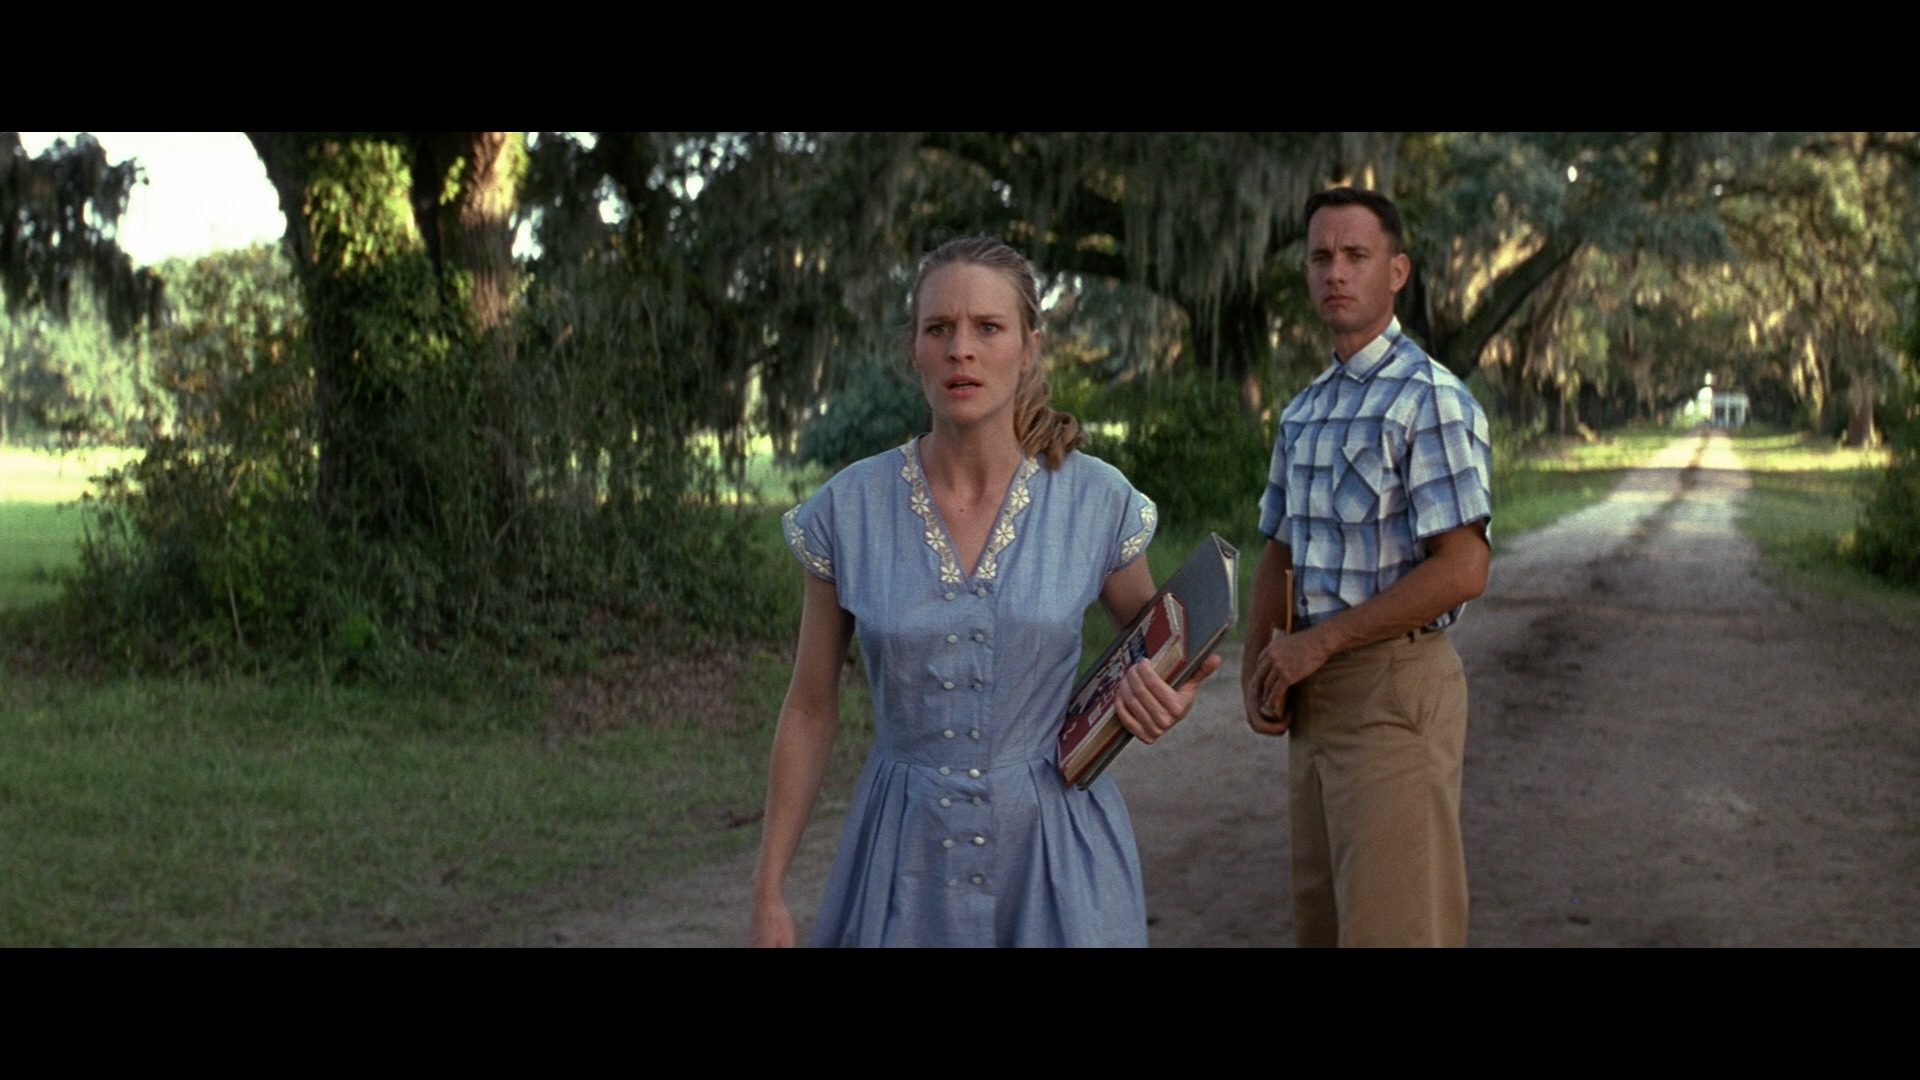 Forrest Gump Quotes Wallpaper Forrest Gump Comedy Drama Re Wallpaper 1920x1080